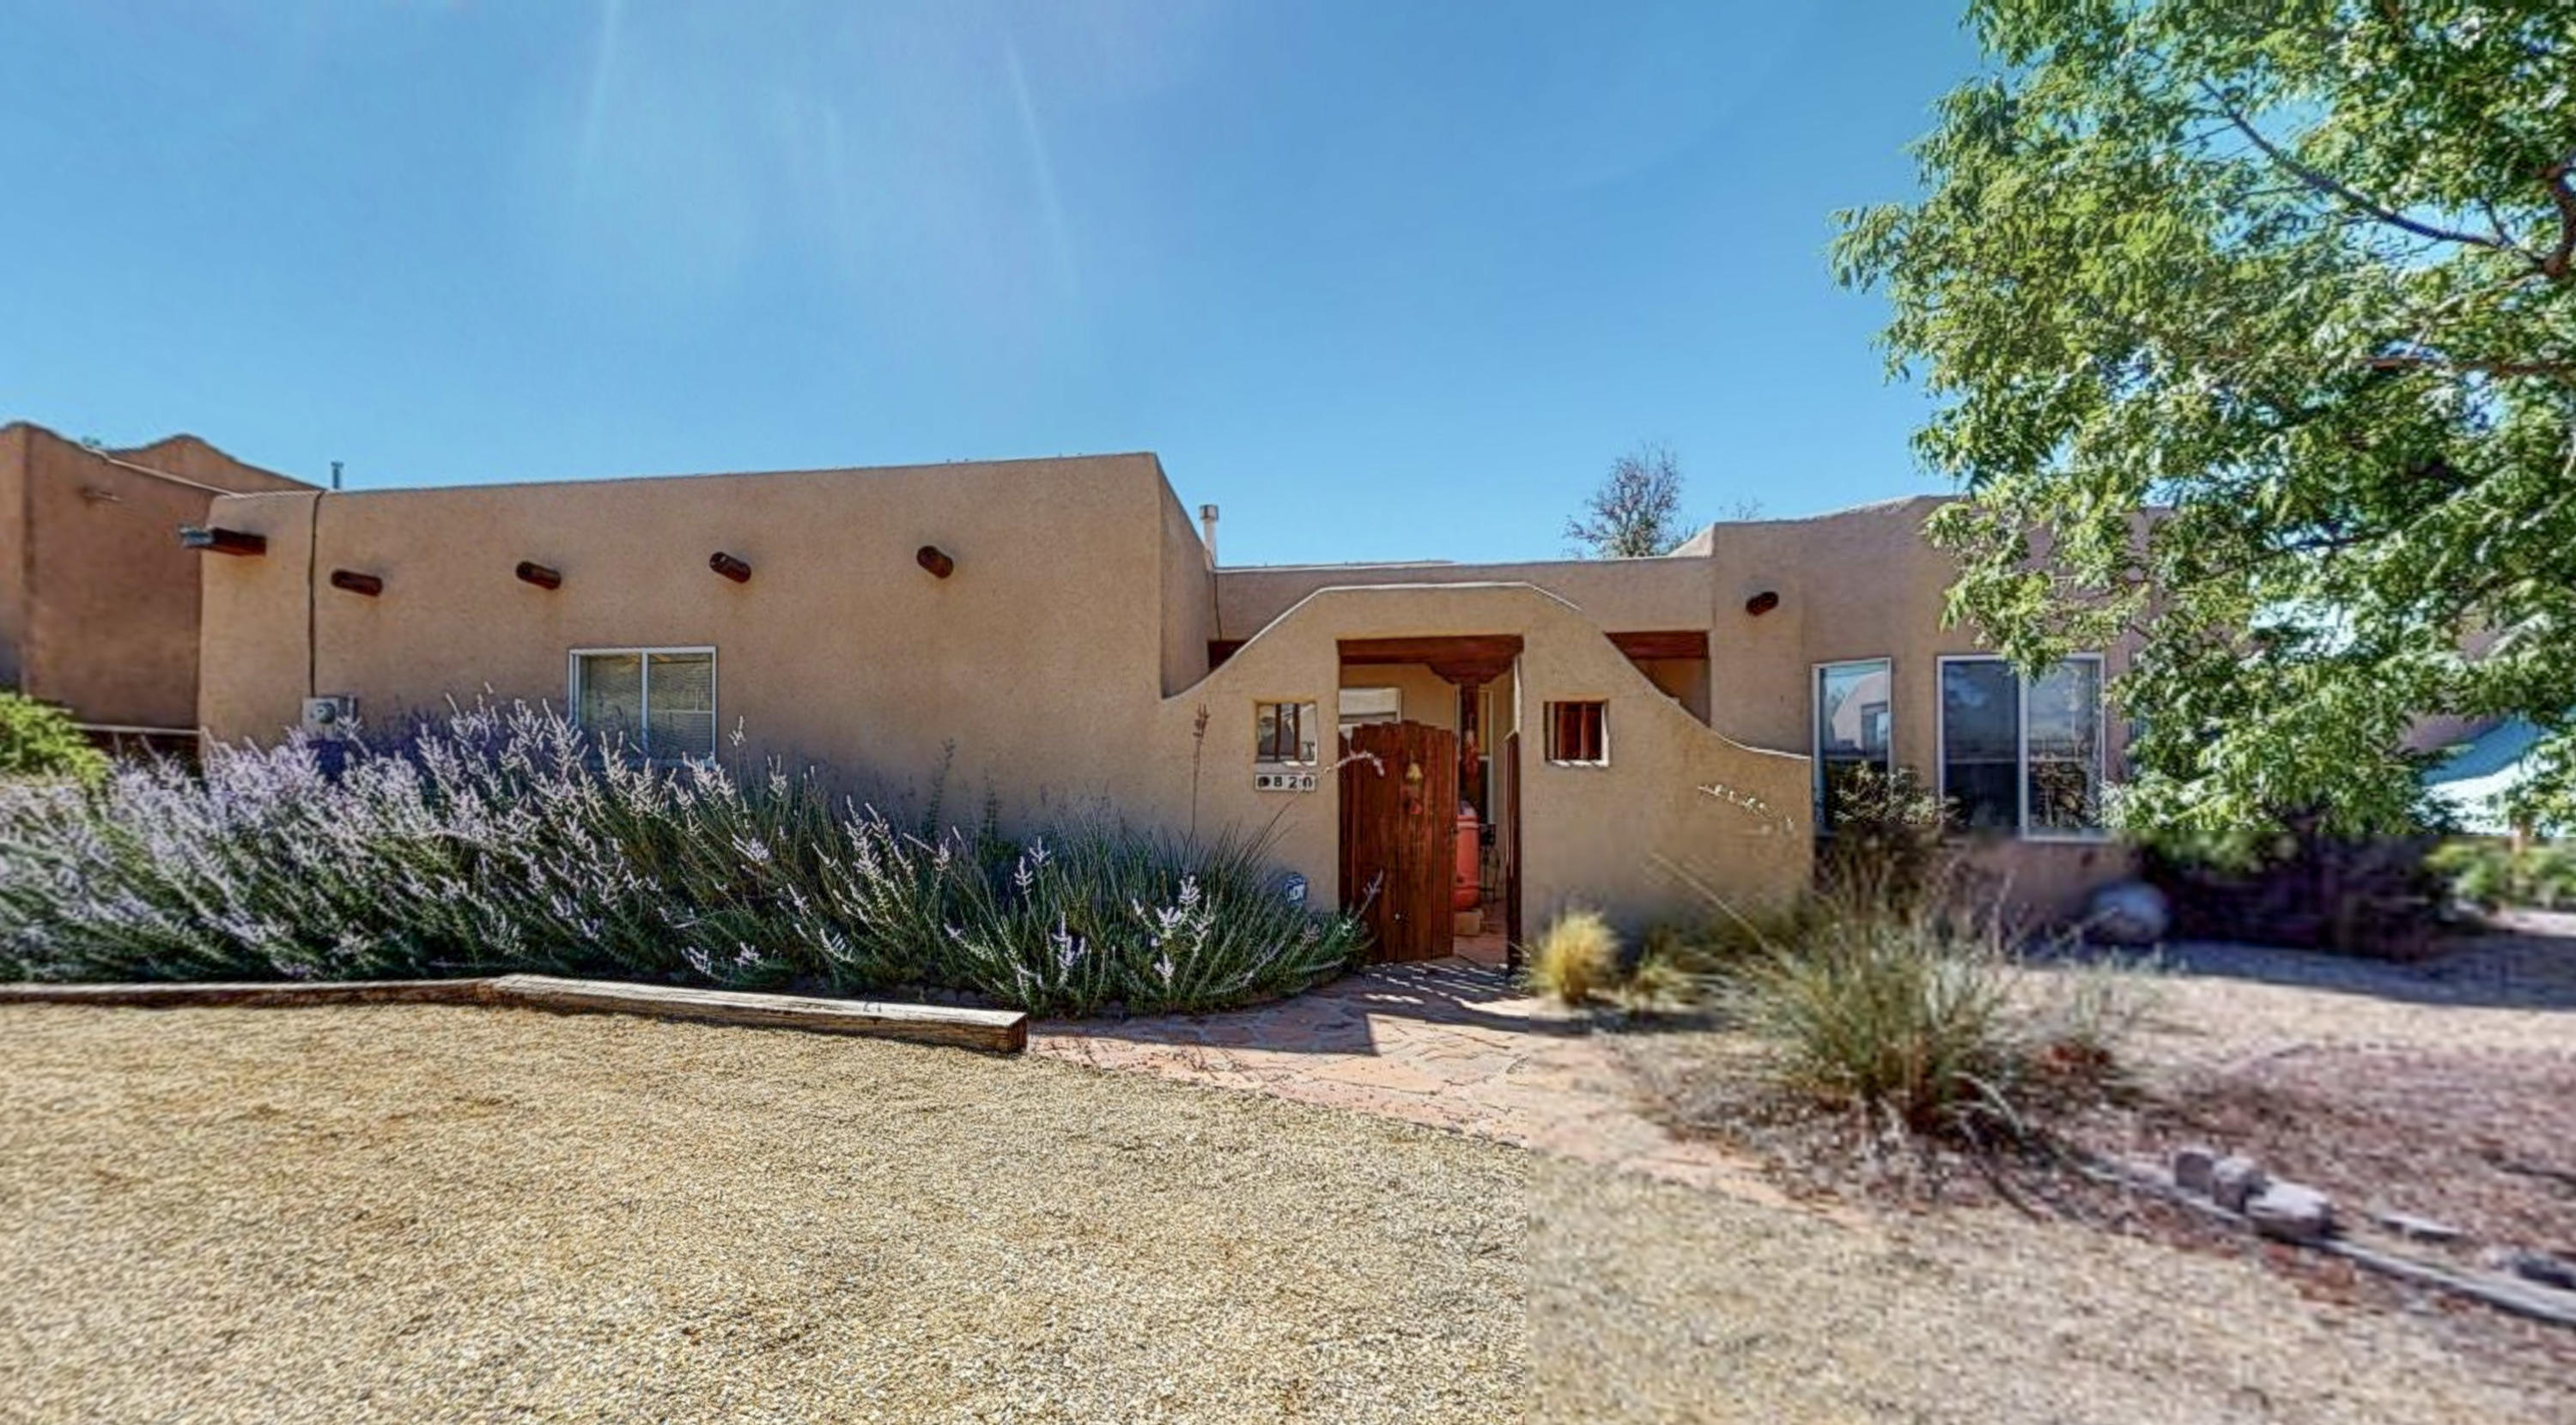 Exquisite Sandia Mountain Views from this property. Courtyard entry with a Circular drive and there is back yard access.  Half acre lot.  Ceramic Tile Throughout, Adobe Accents, Vigas, Kiva Fireplace. Large windows to capture those spectacular views.   Formal Dining, Nook in kitchen with custom painted cabinets.  Privacy Suite with large bathroom, Separate Shower and Garden Tub.Storage Shed, Gray Water Barrels, Large yard beyond wood fence with green house. Cleveland High District.